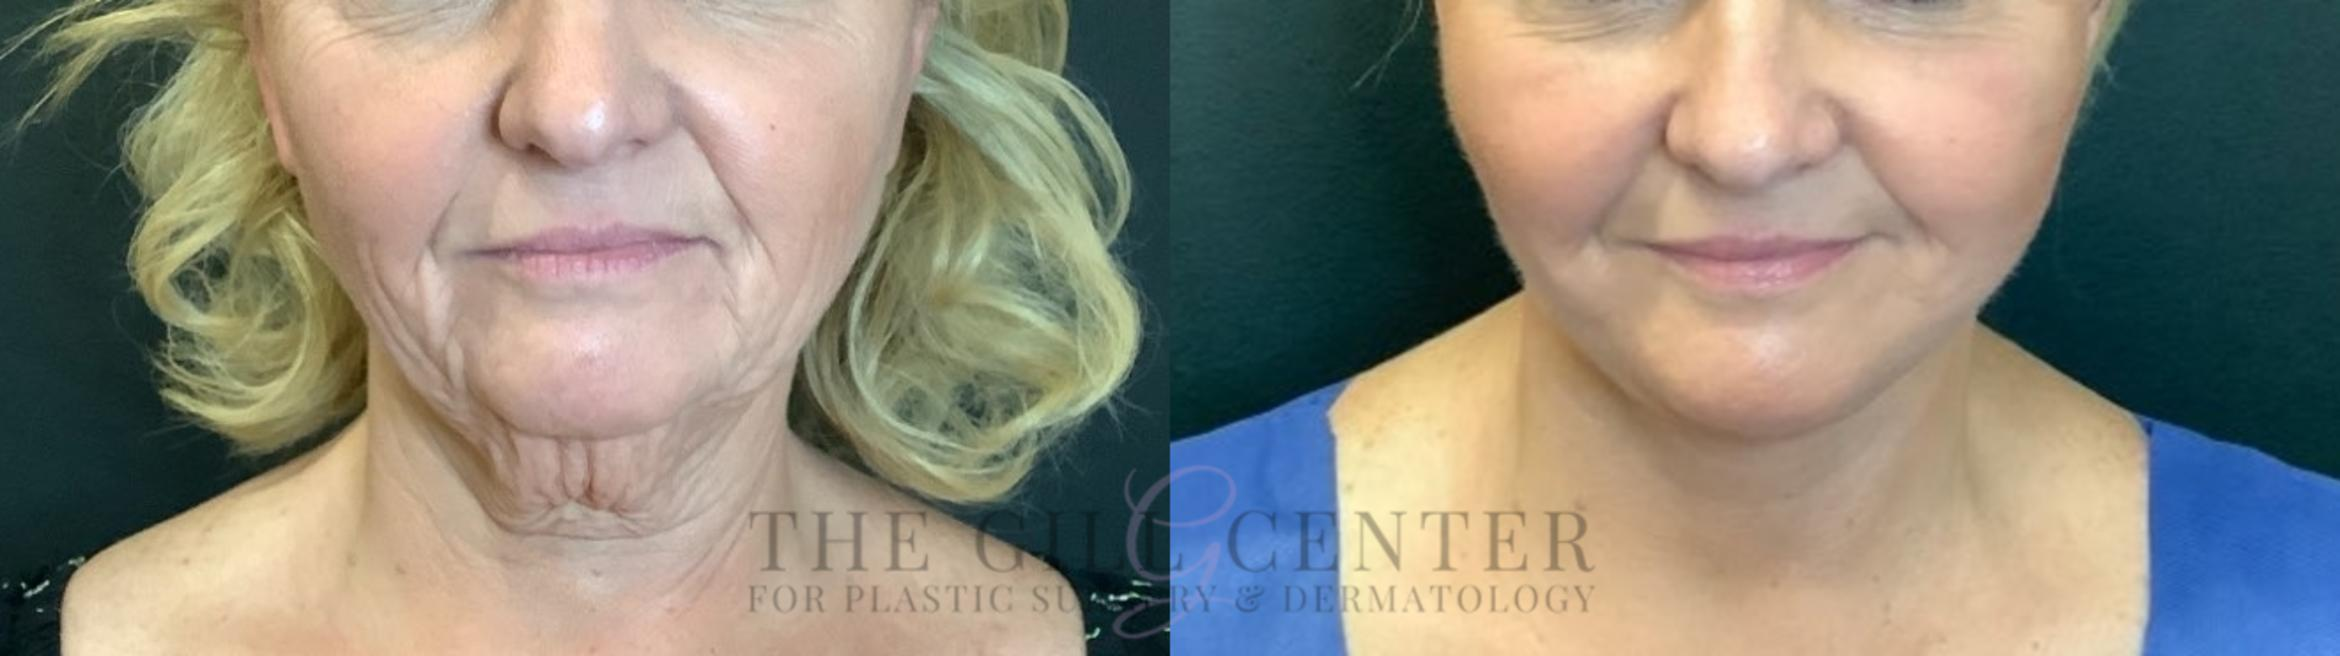 Face & Neck Lift Case 465 Before & After Front | The Woodlands, TX | The Gill Center for Plastic Surgery and Dermatology